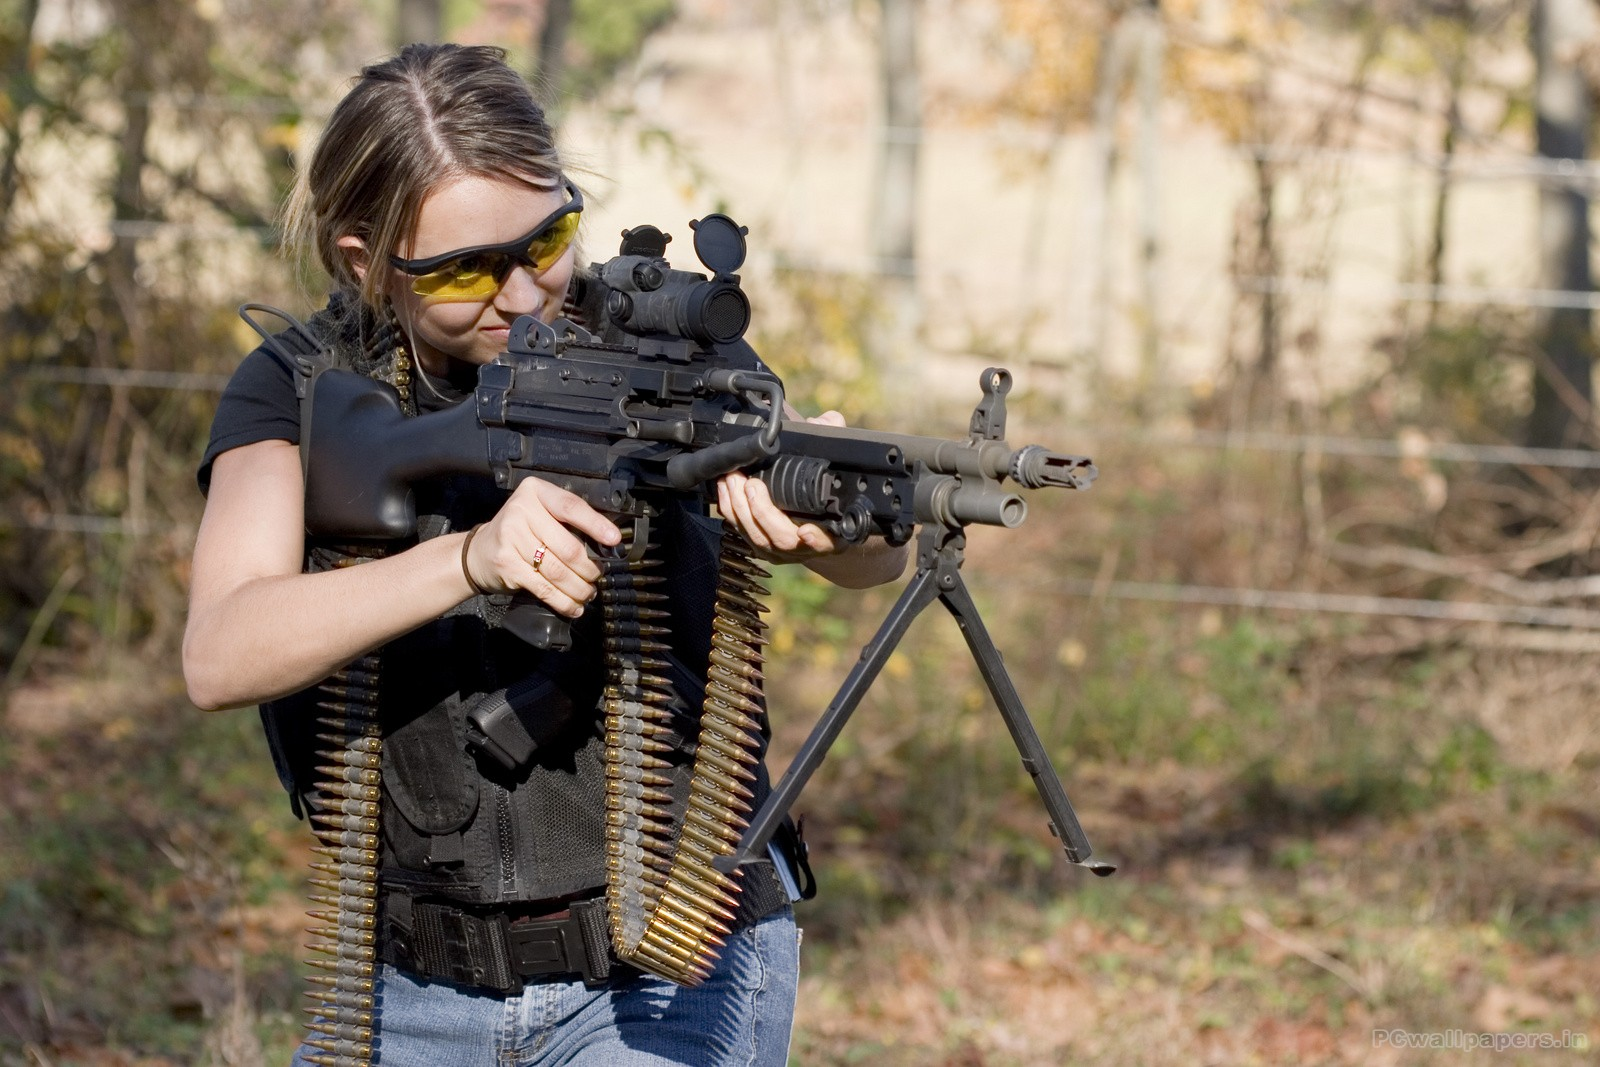 Women and Guns: How The Left Gets It Wrong